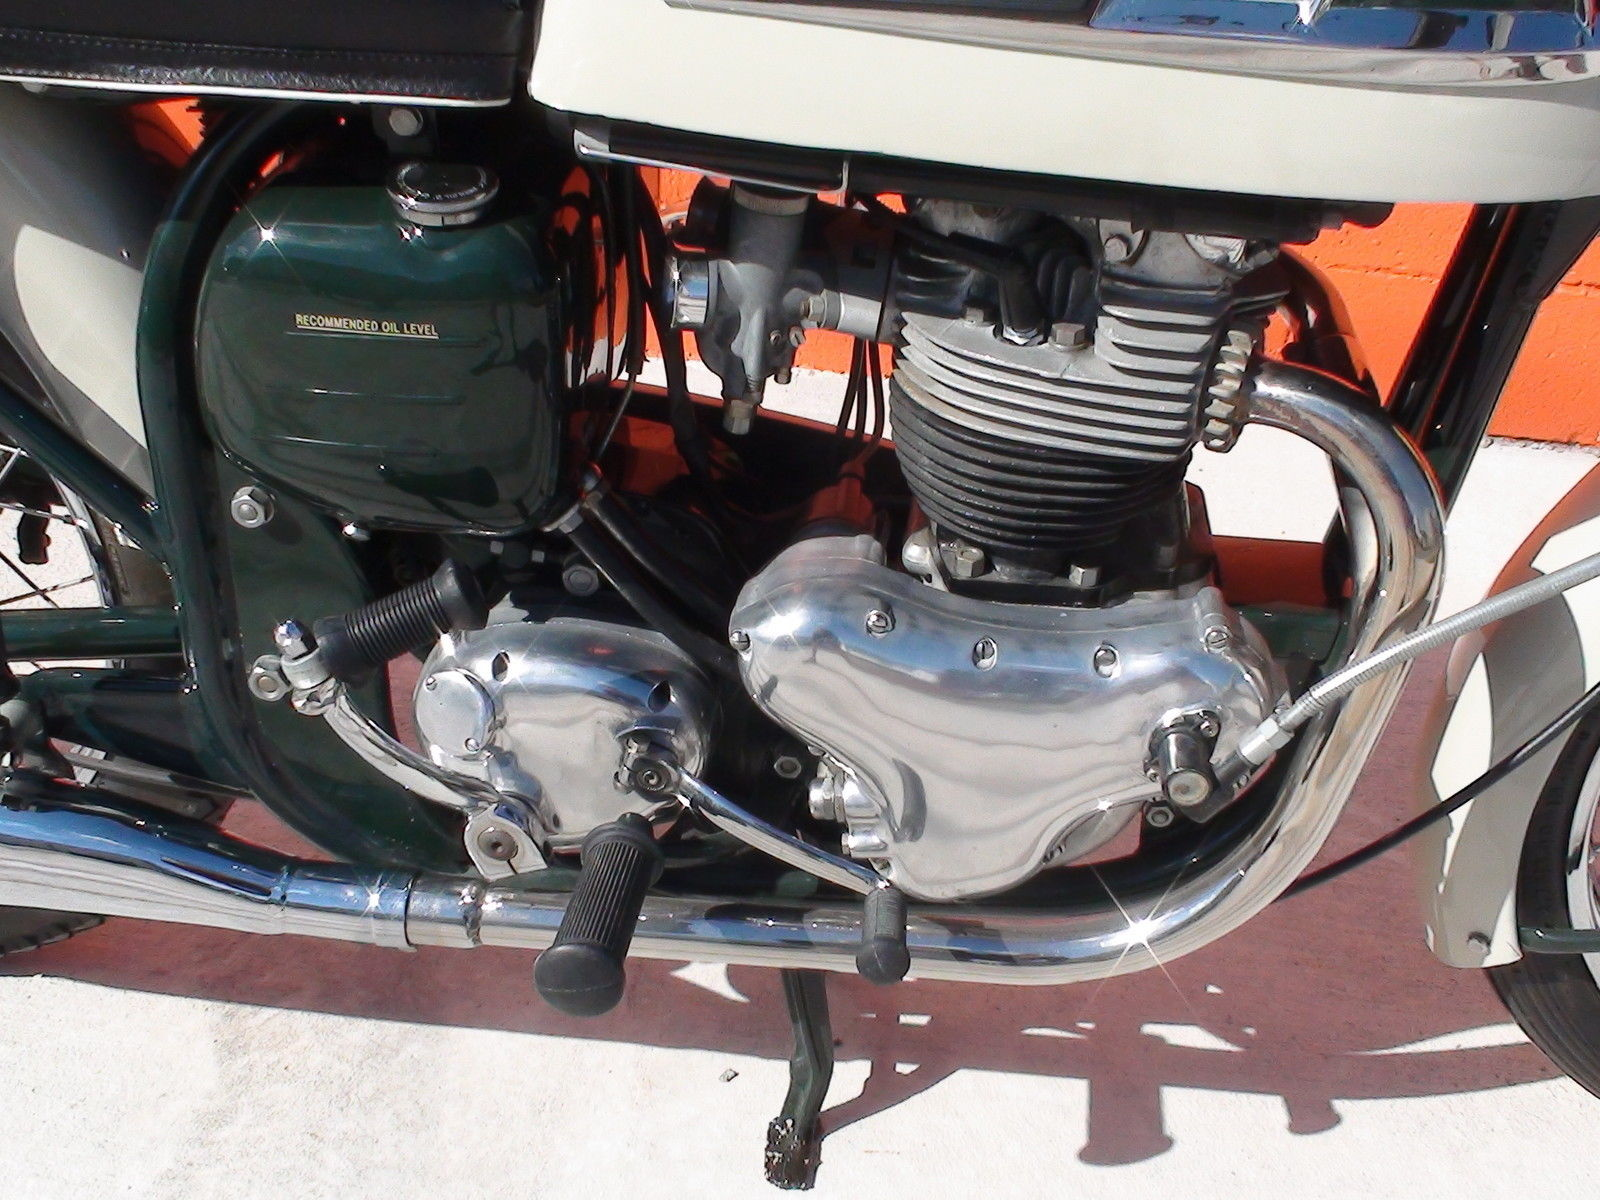 Norton Dominator 88 - 1960 - Kick Start, Timing Cover, Gearbox and Gear Change.